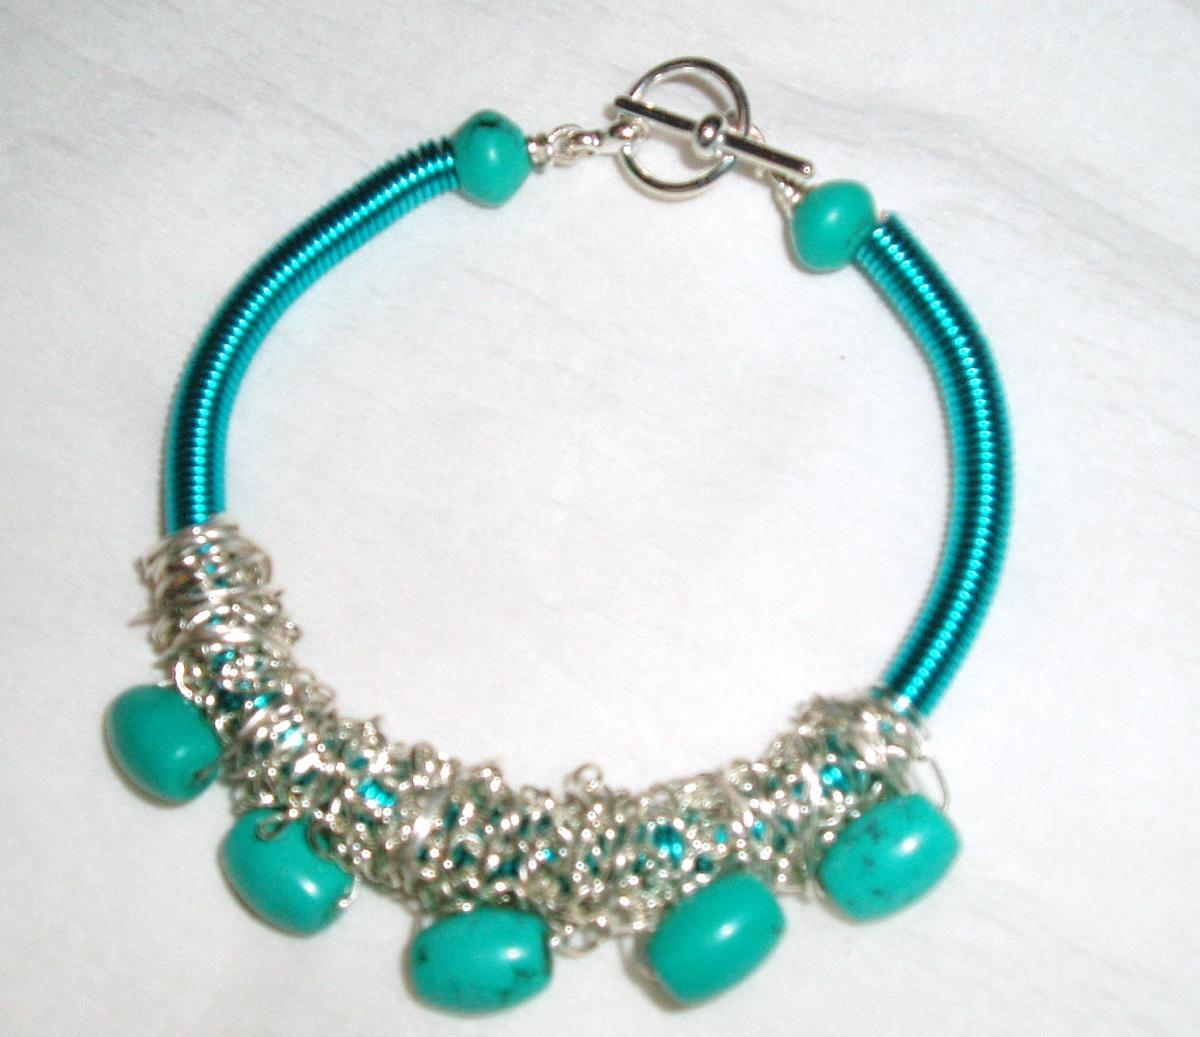 gemstone and turquoise wire coil bracelet handmade jewelry gift ideas